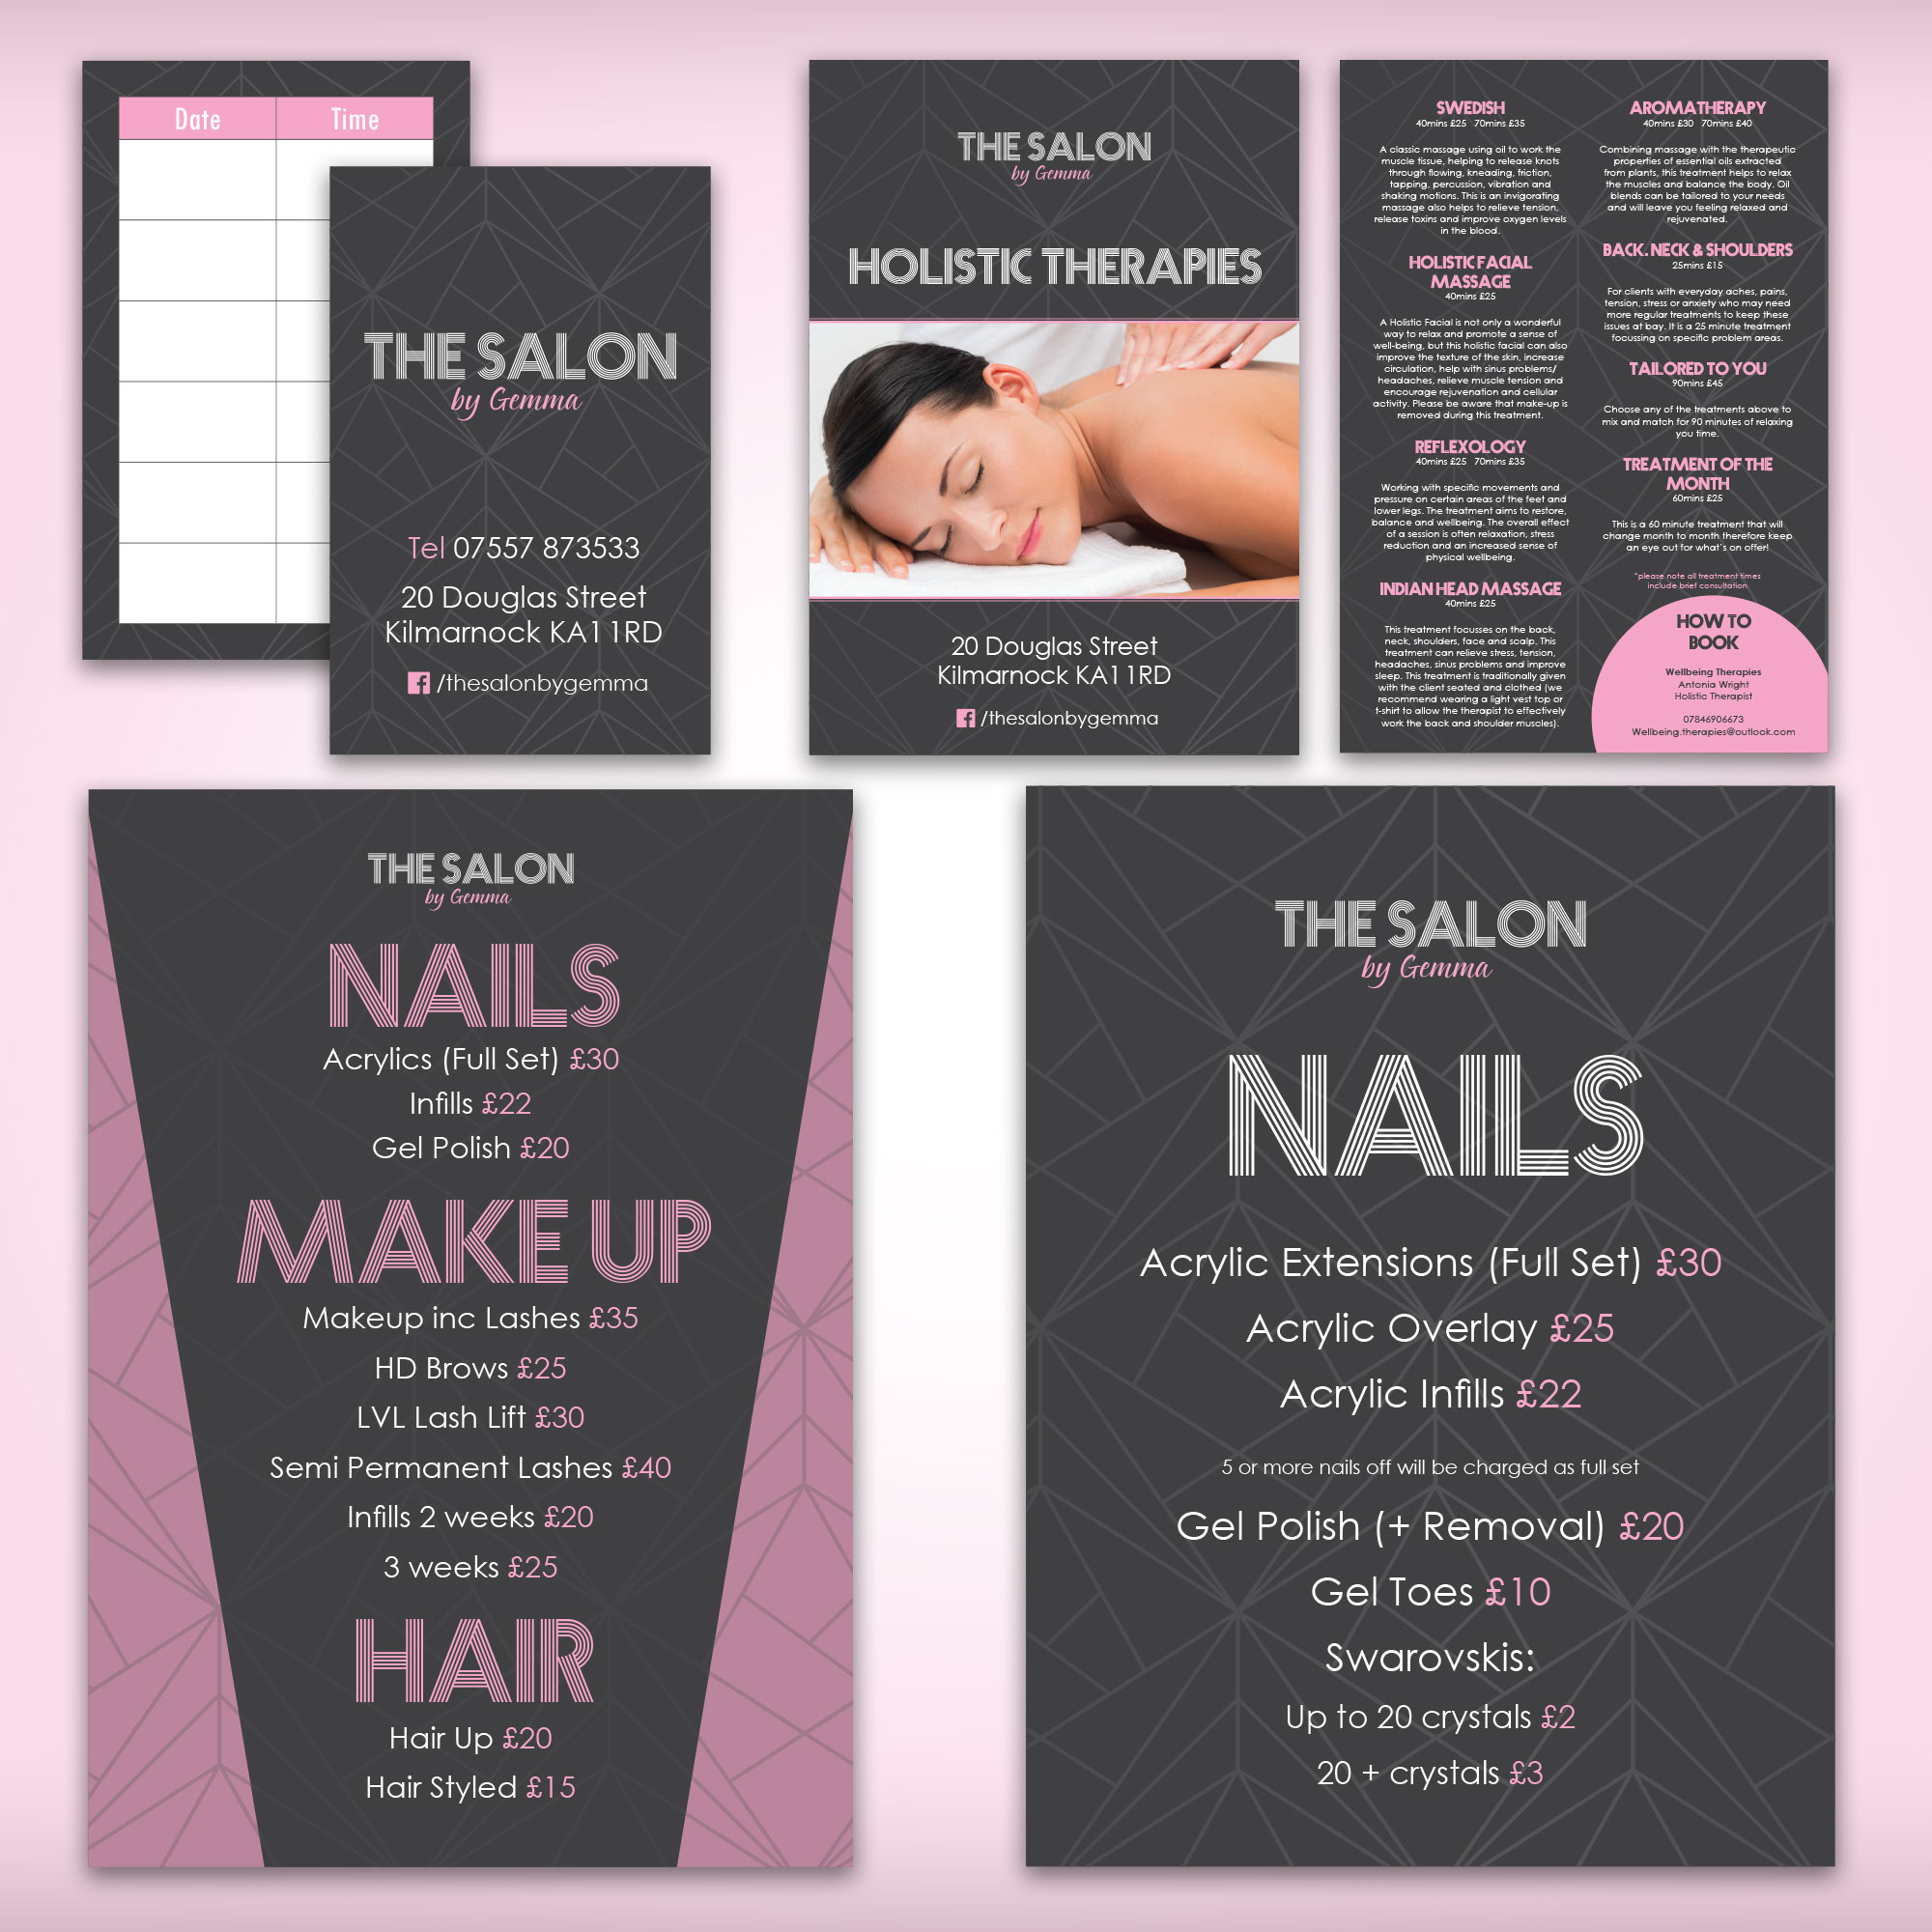 The Salon Graphic Design